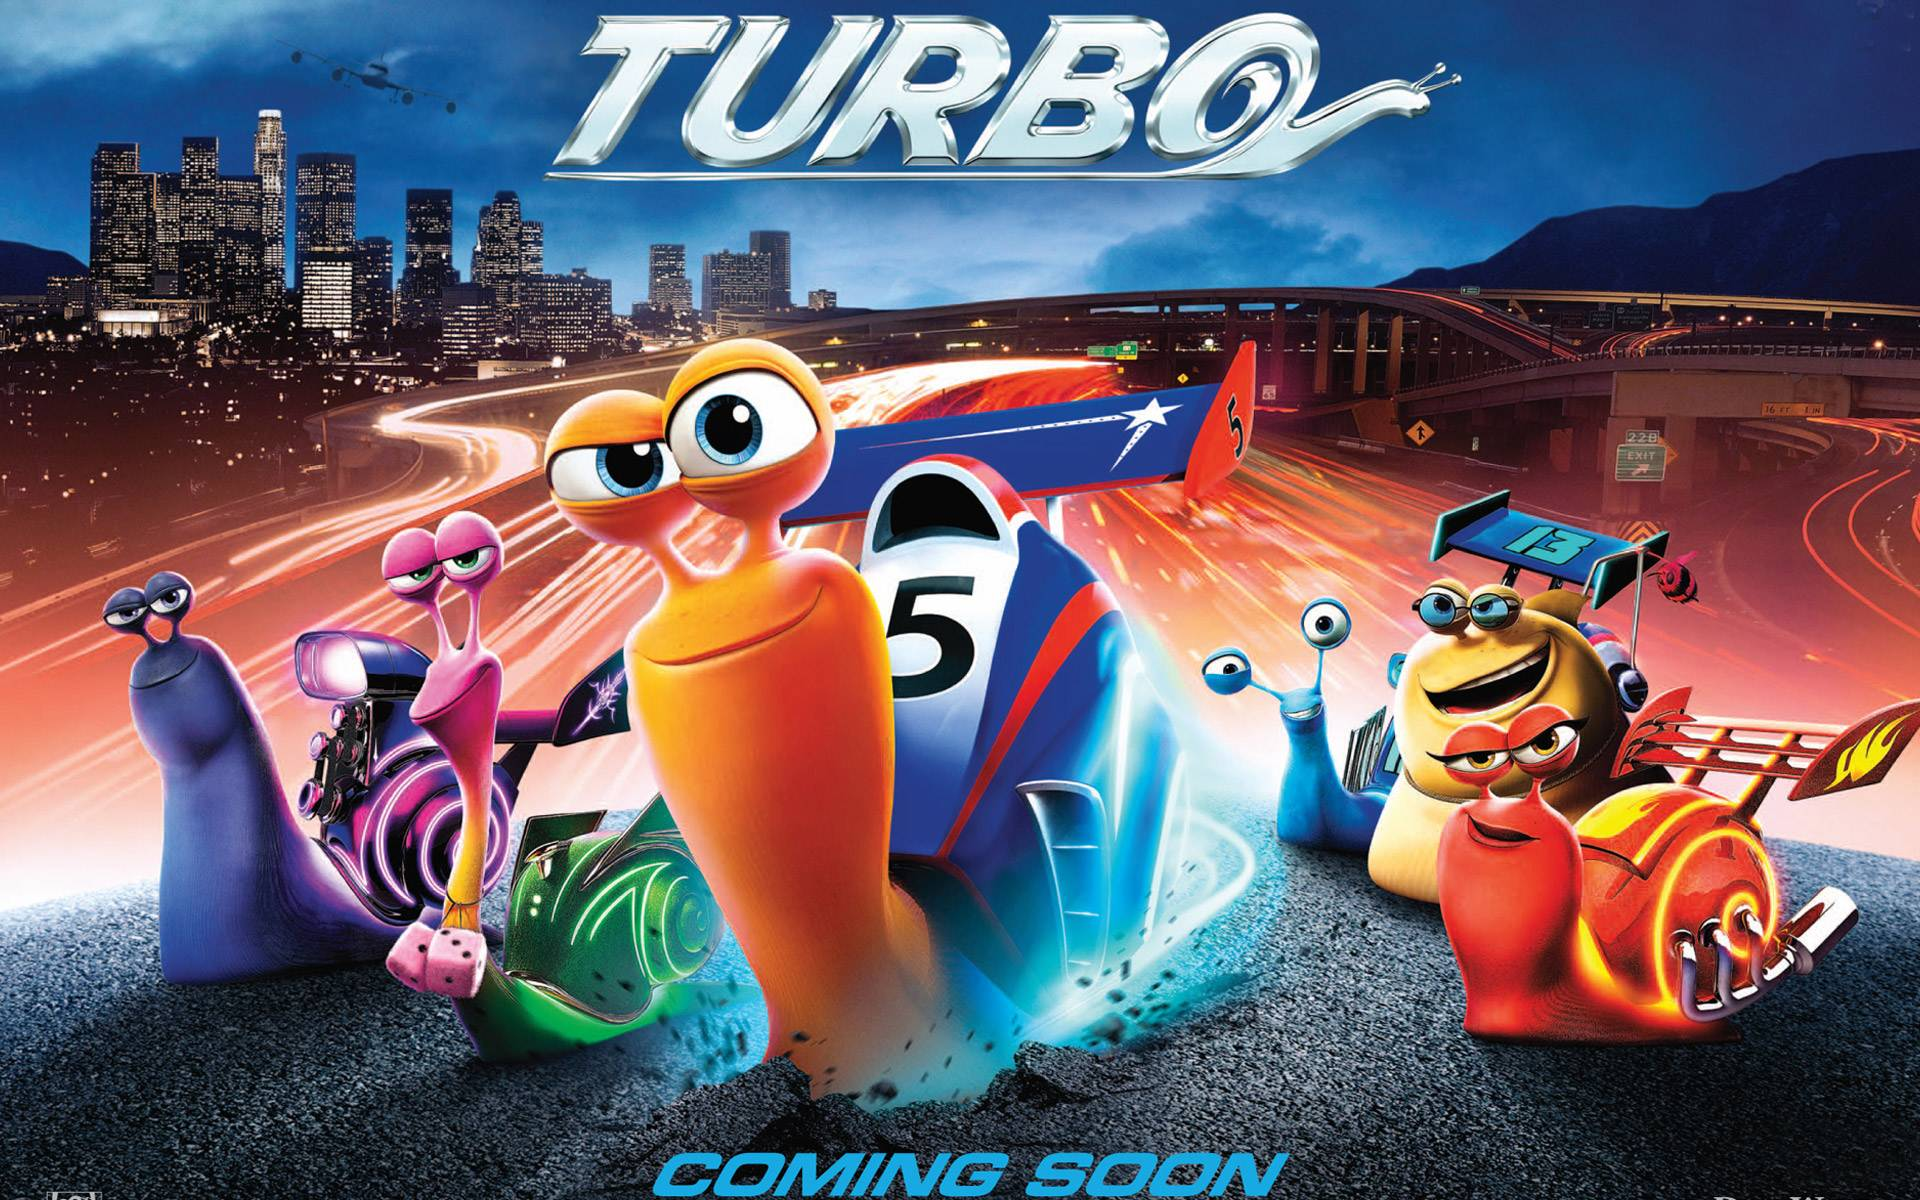 dreamworks 39 turbo at theaters this week netflix series in december peter kafka media. Black Bedroom Furniture Sets. Home Design Ideas